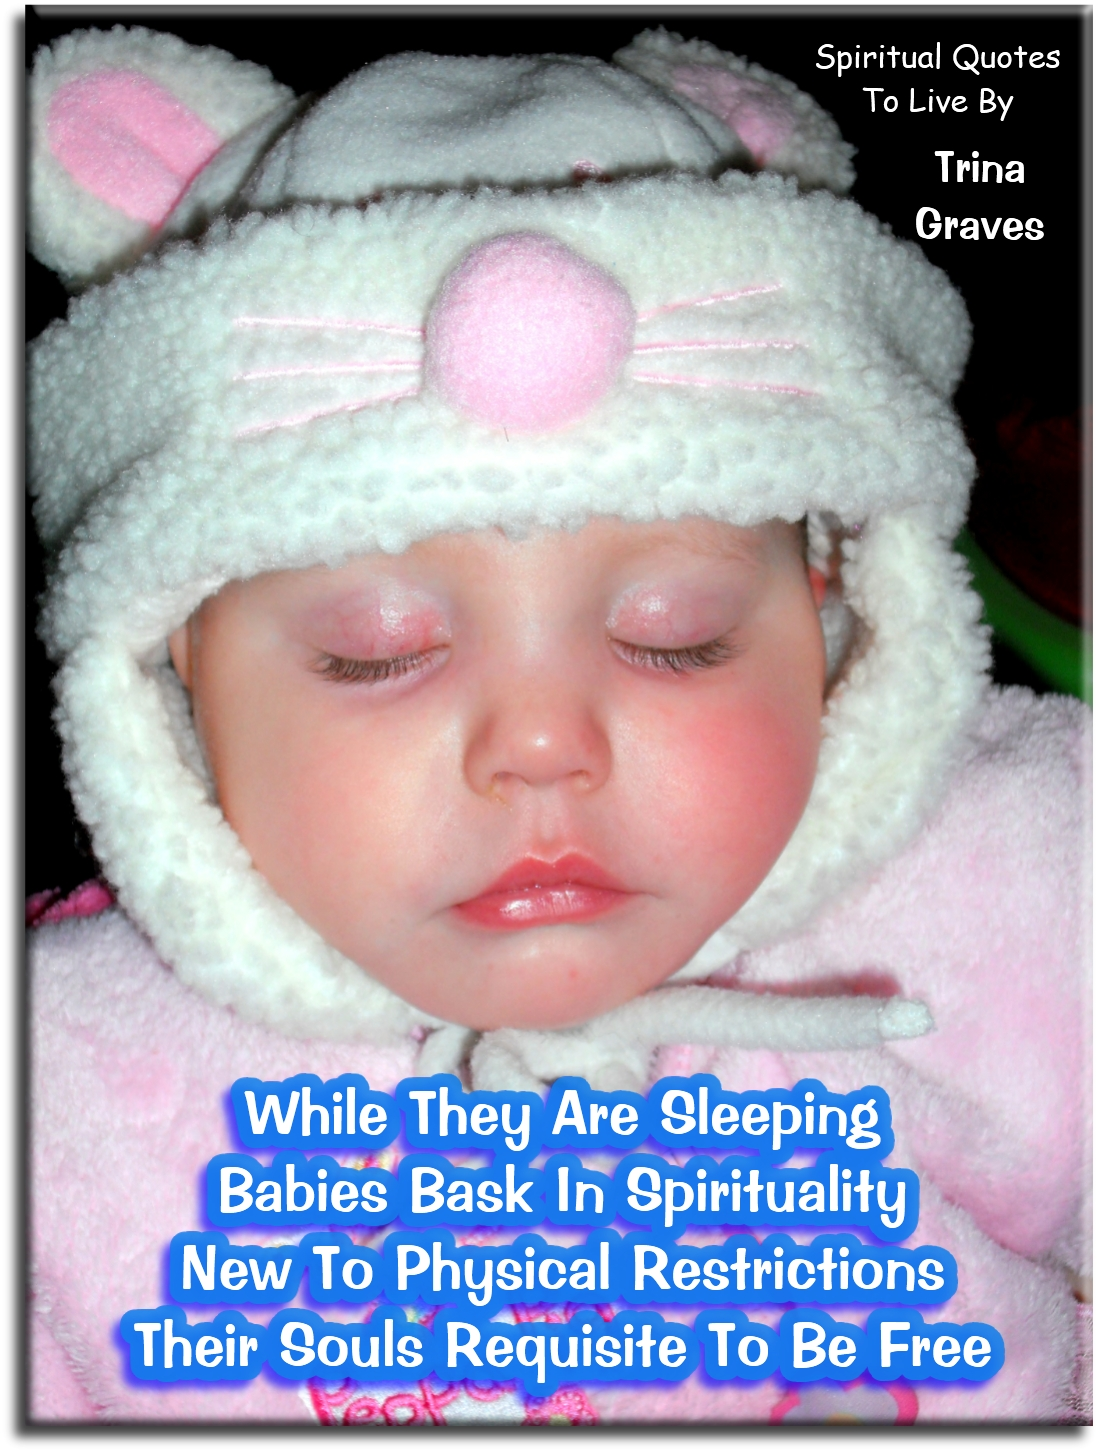 While they are sleeping, babies bask in spirituality, new to physical restrictions, their Souls requisite to be free - Trina Graves - Spiritual Quotes To Live By